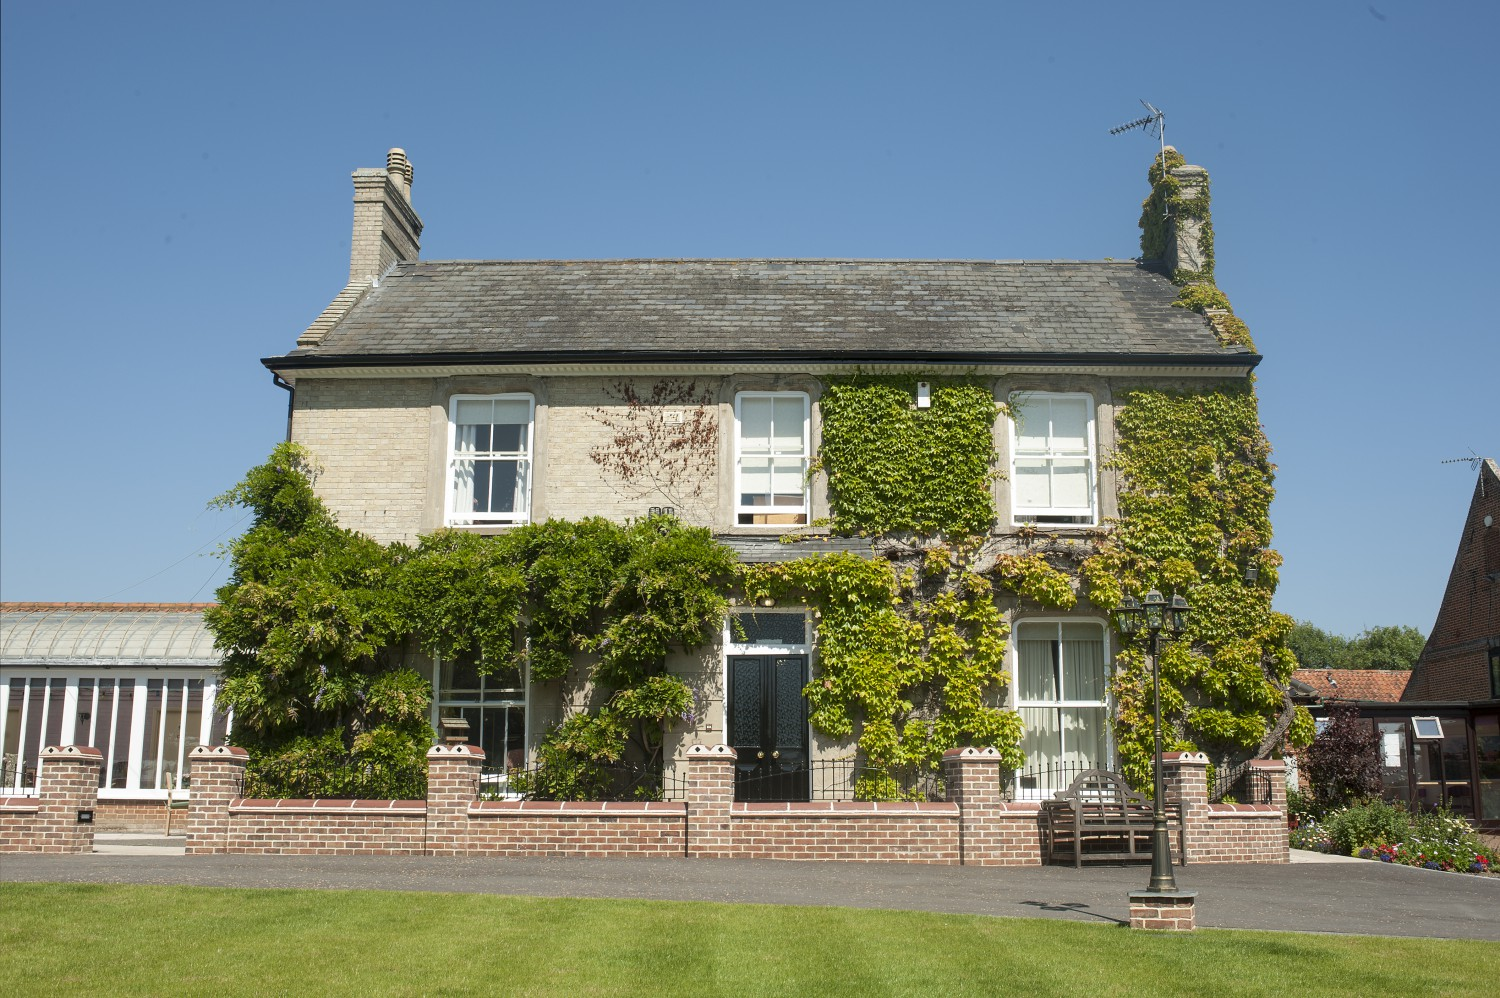 Carlton Hall Residential Care Home and Village - Suffolk, Suffolk NR33 8BL - 01502 513208   ShowMeLocal.com